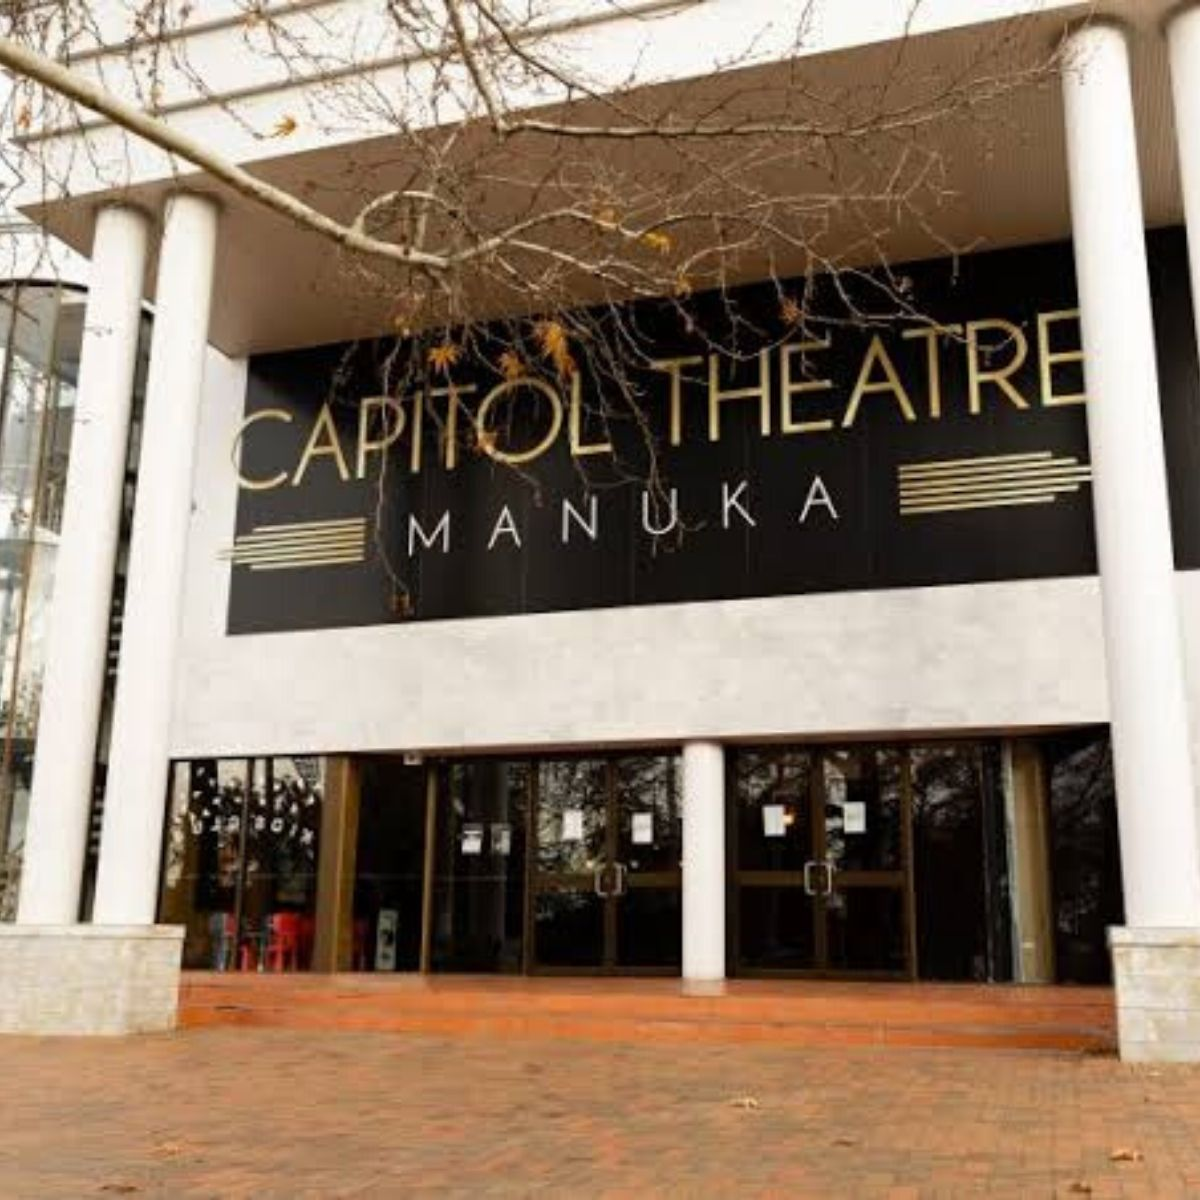 manuka cinema movie theatre capital canberra ACT city griffith canbhol short term holiday accommodation